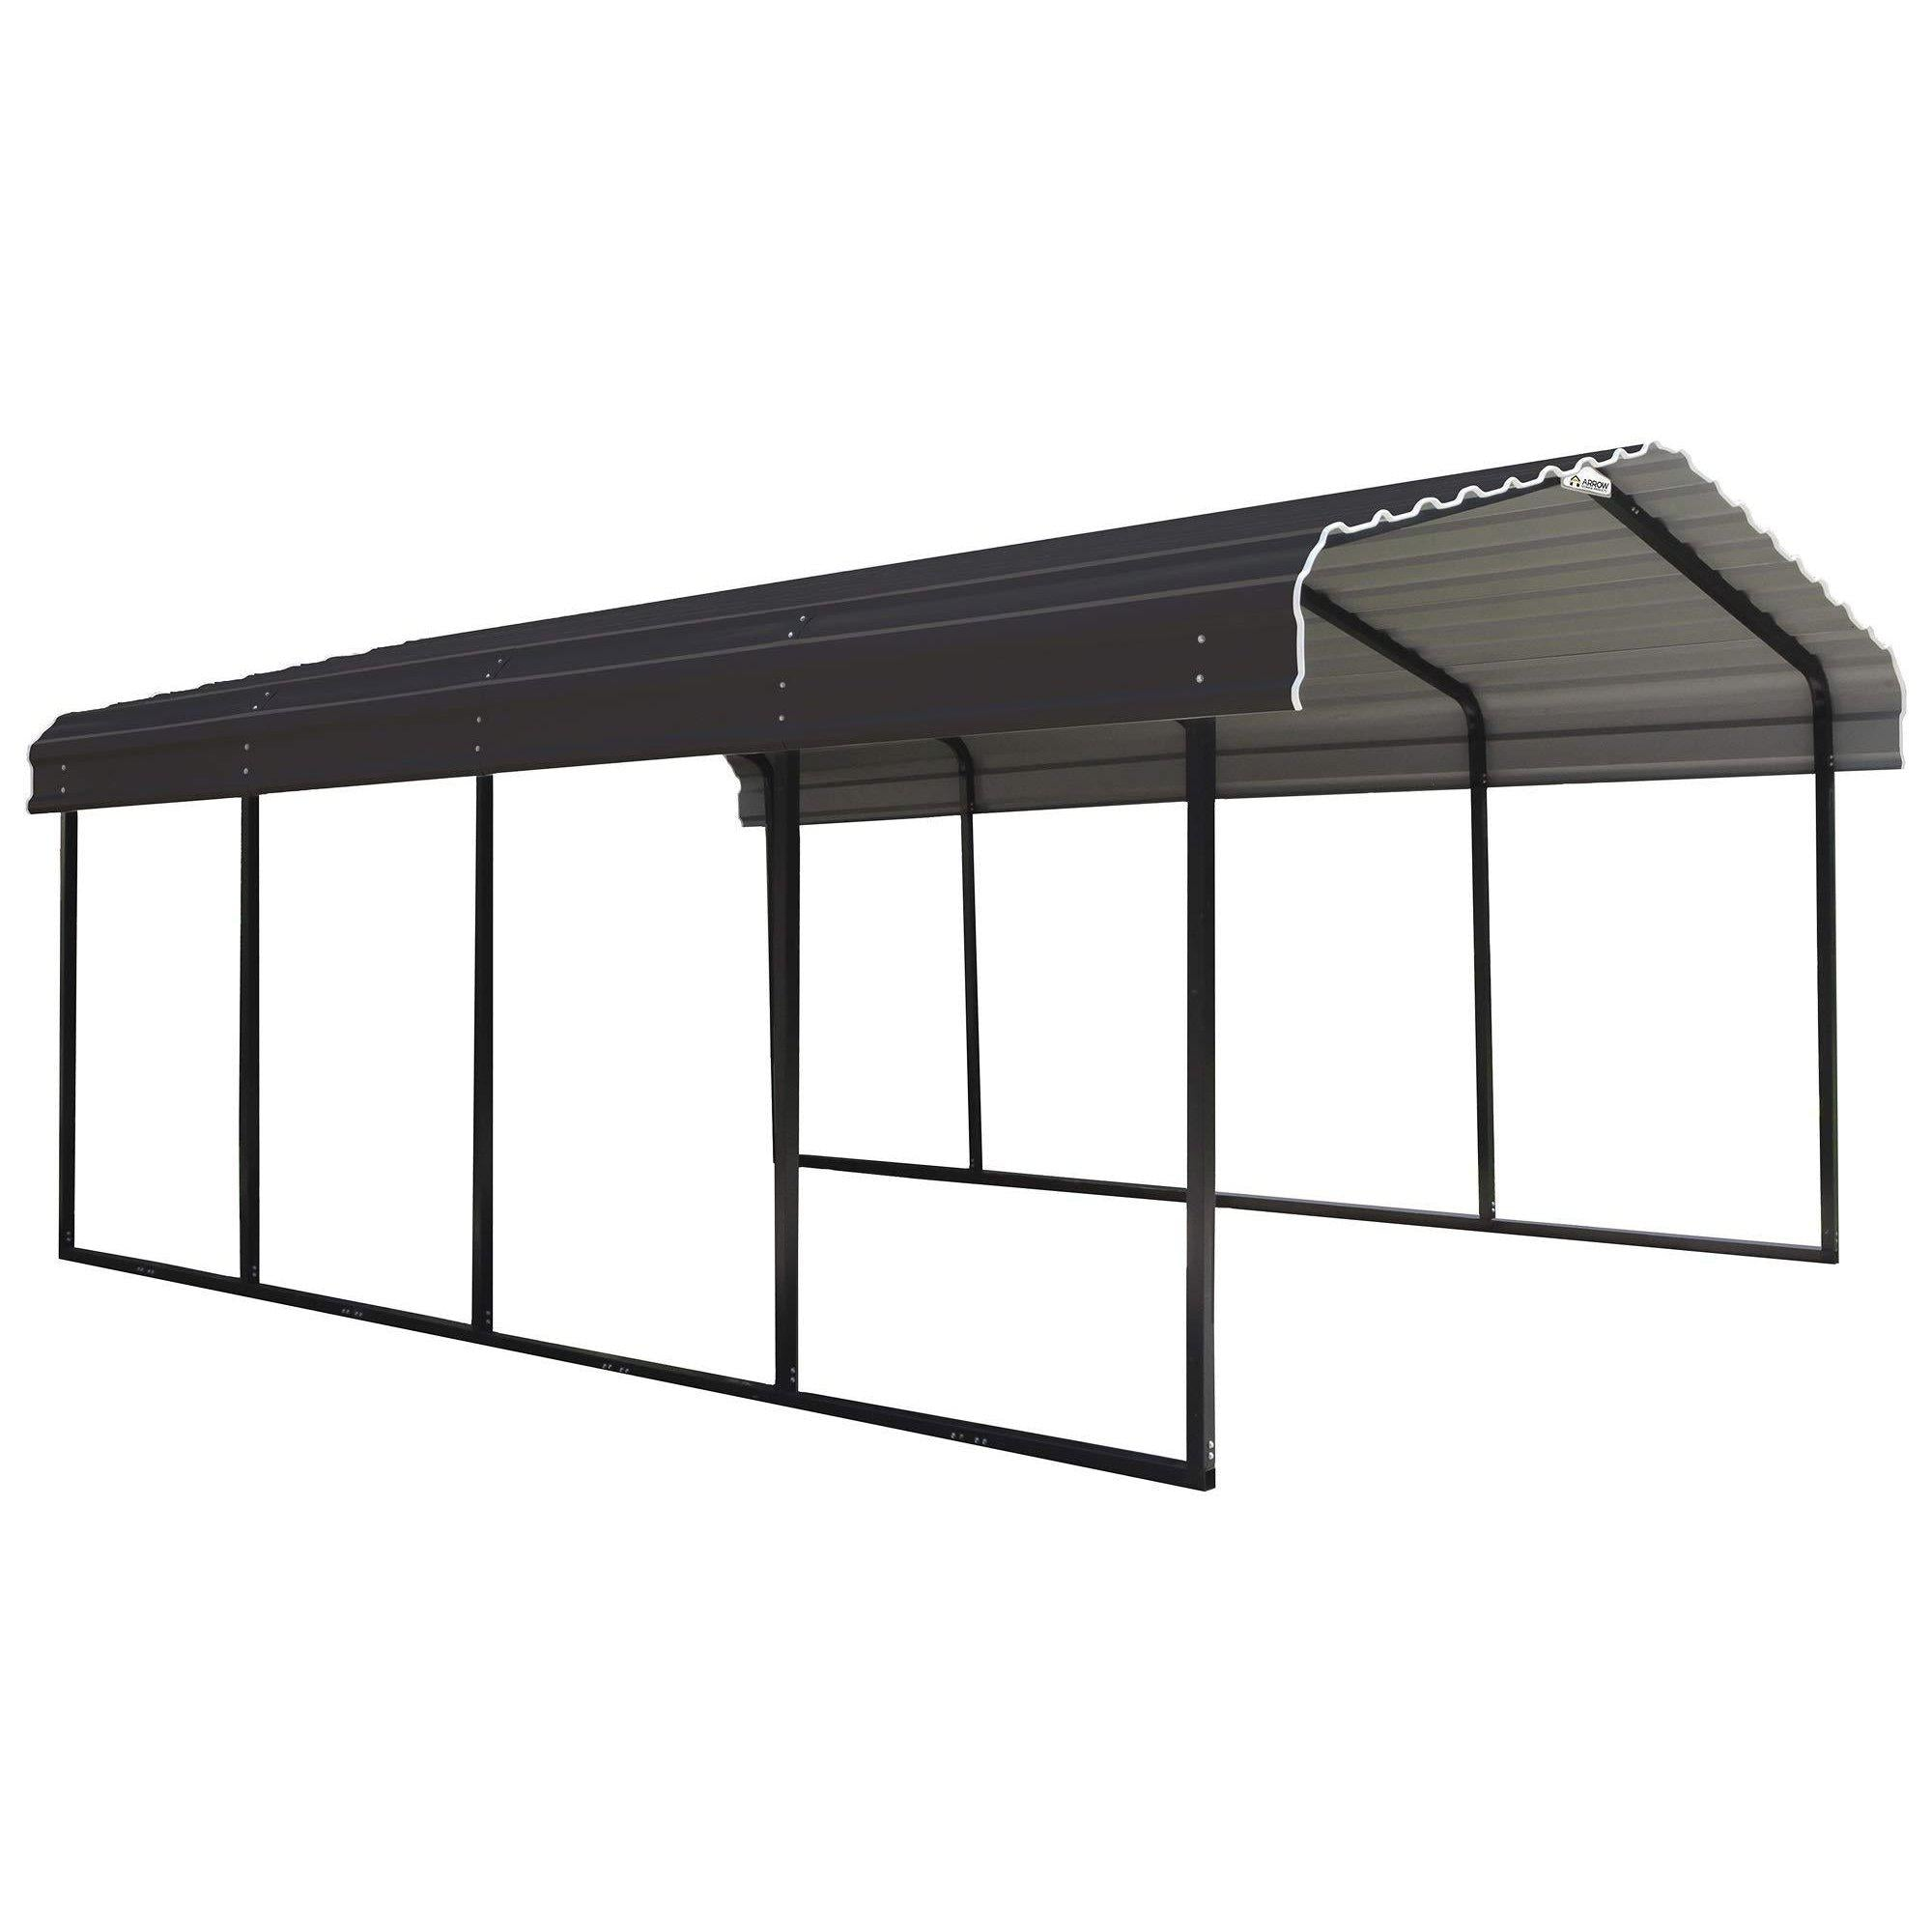 Arrow 12 x 24 x 7-Foot Heavy Duty Galvanized Steel Metal Multi-Use Shelter, Shade, Carport, 12' x 24' x 7'